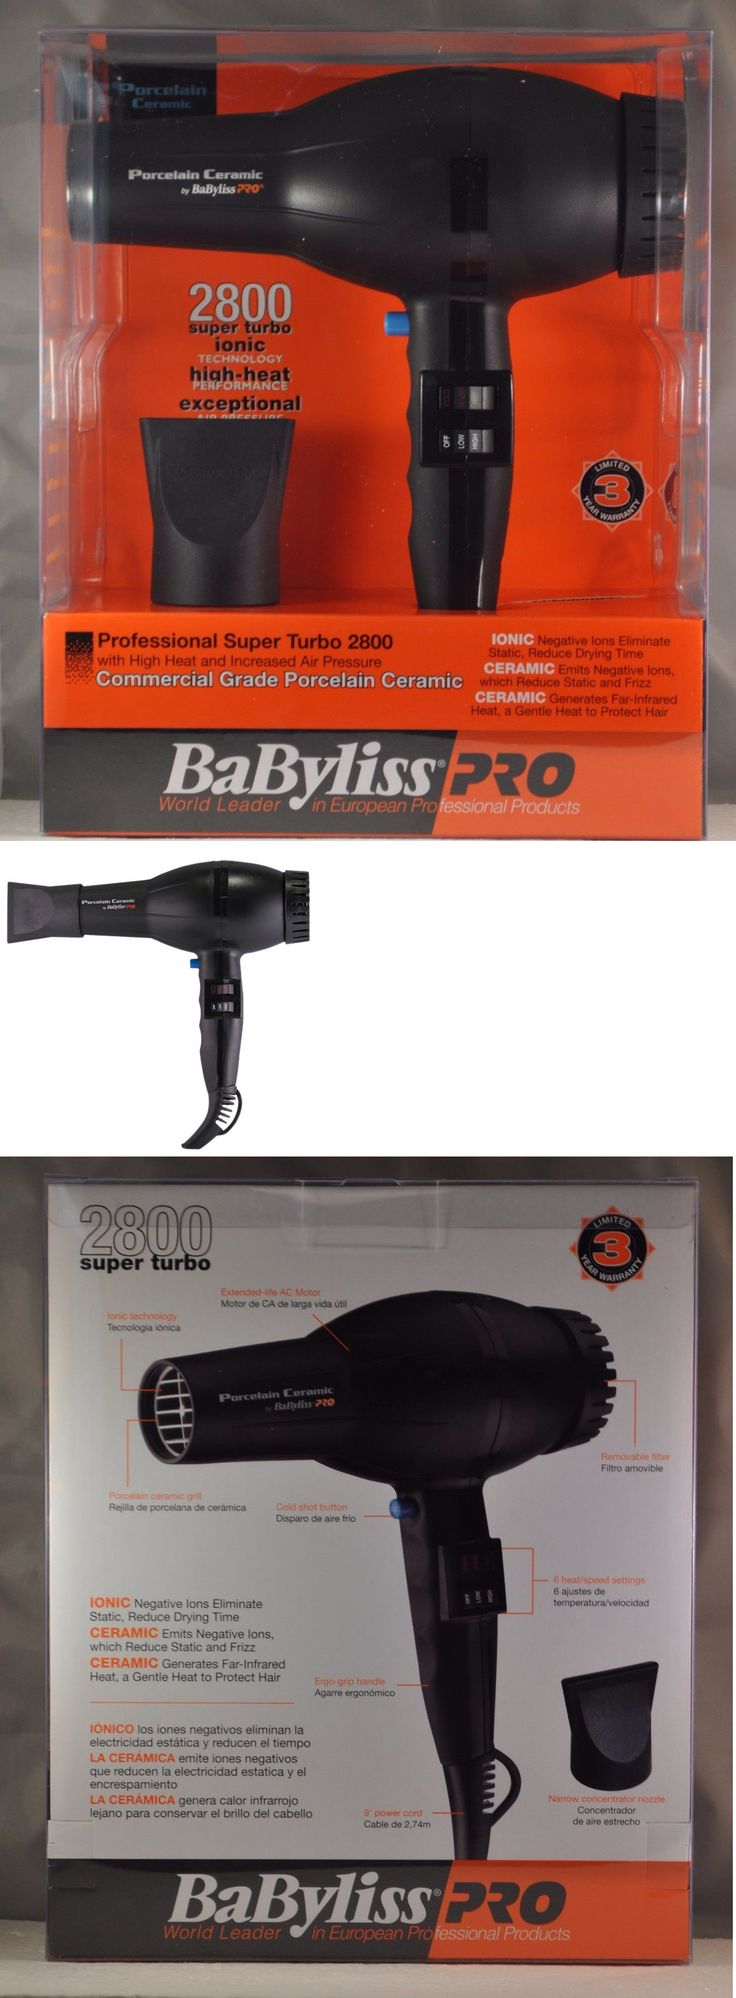 Hair Dryers: Babyliss Pro Porcelain Ceramic Ionic Super Turbo 2800 Hair Dryer Hair Blower -> BUY IT NOW ONLY: $59.95 on eBay!